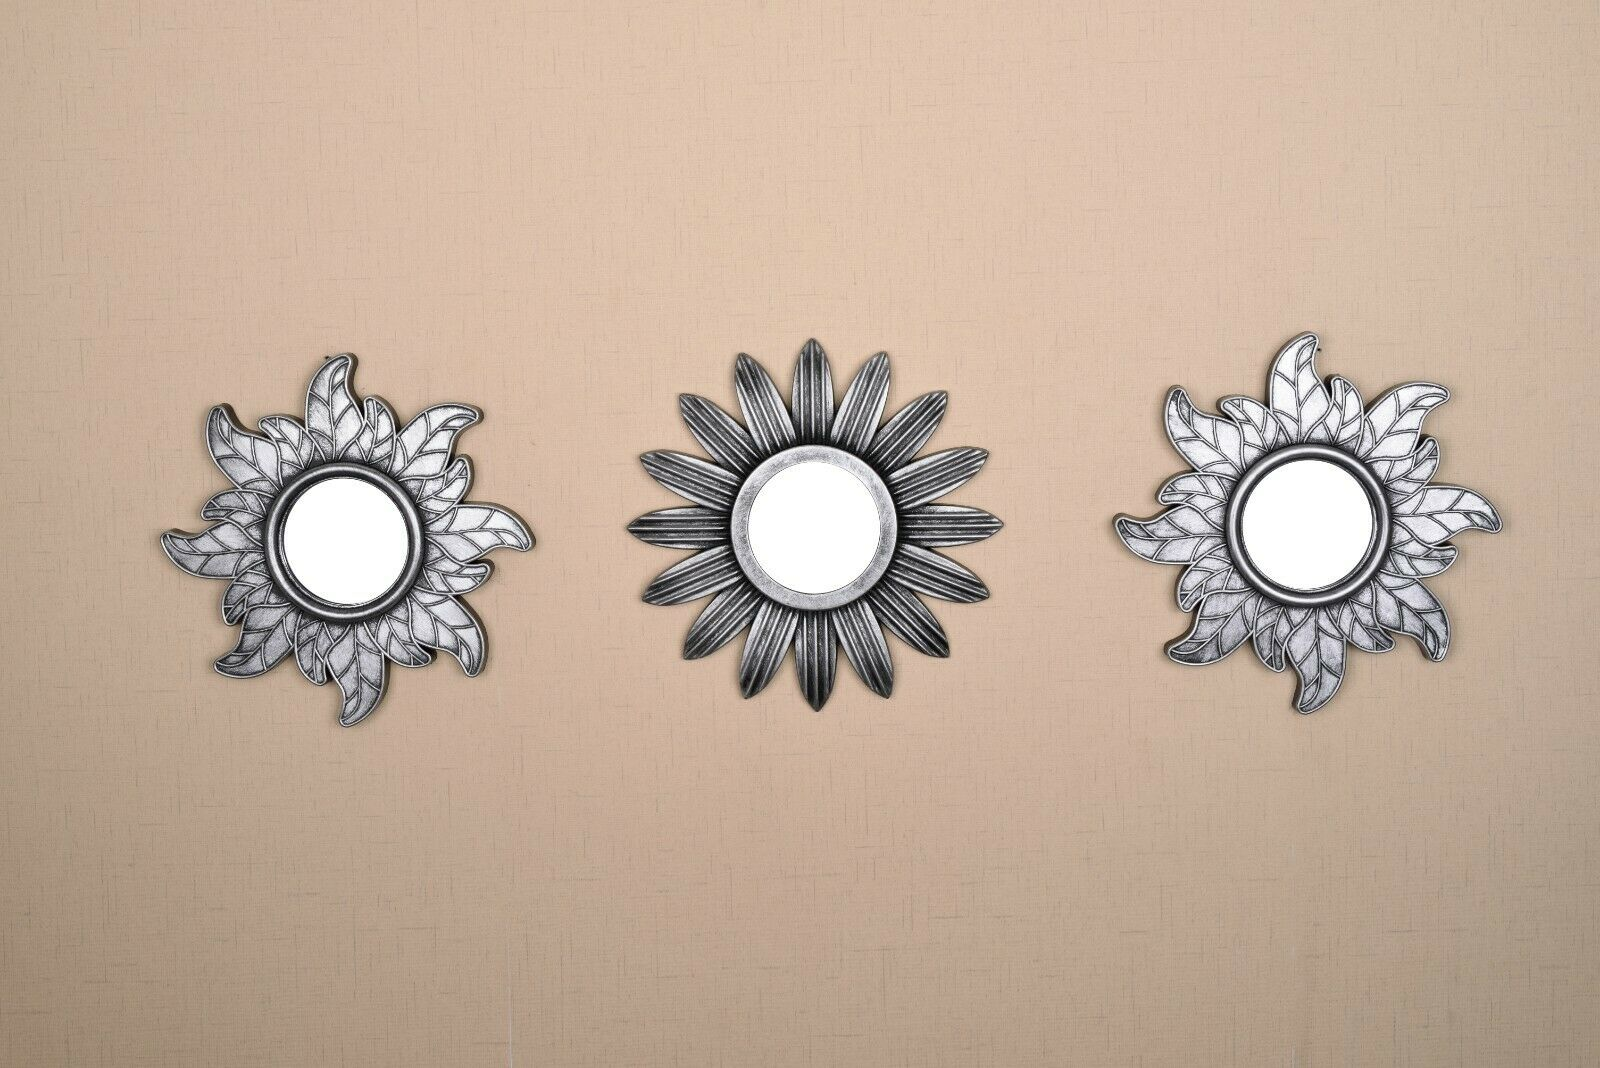 All American Collection New 3 Piece Decorative Mirror Set, W